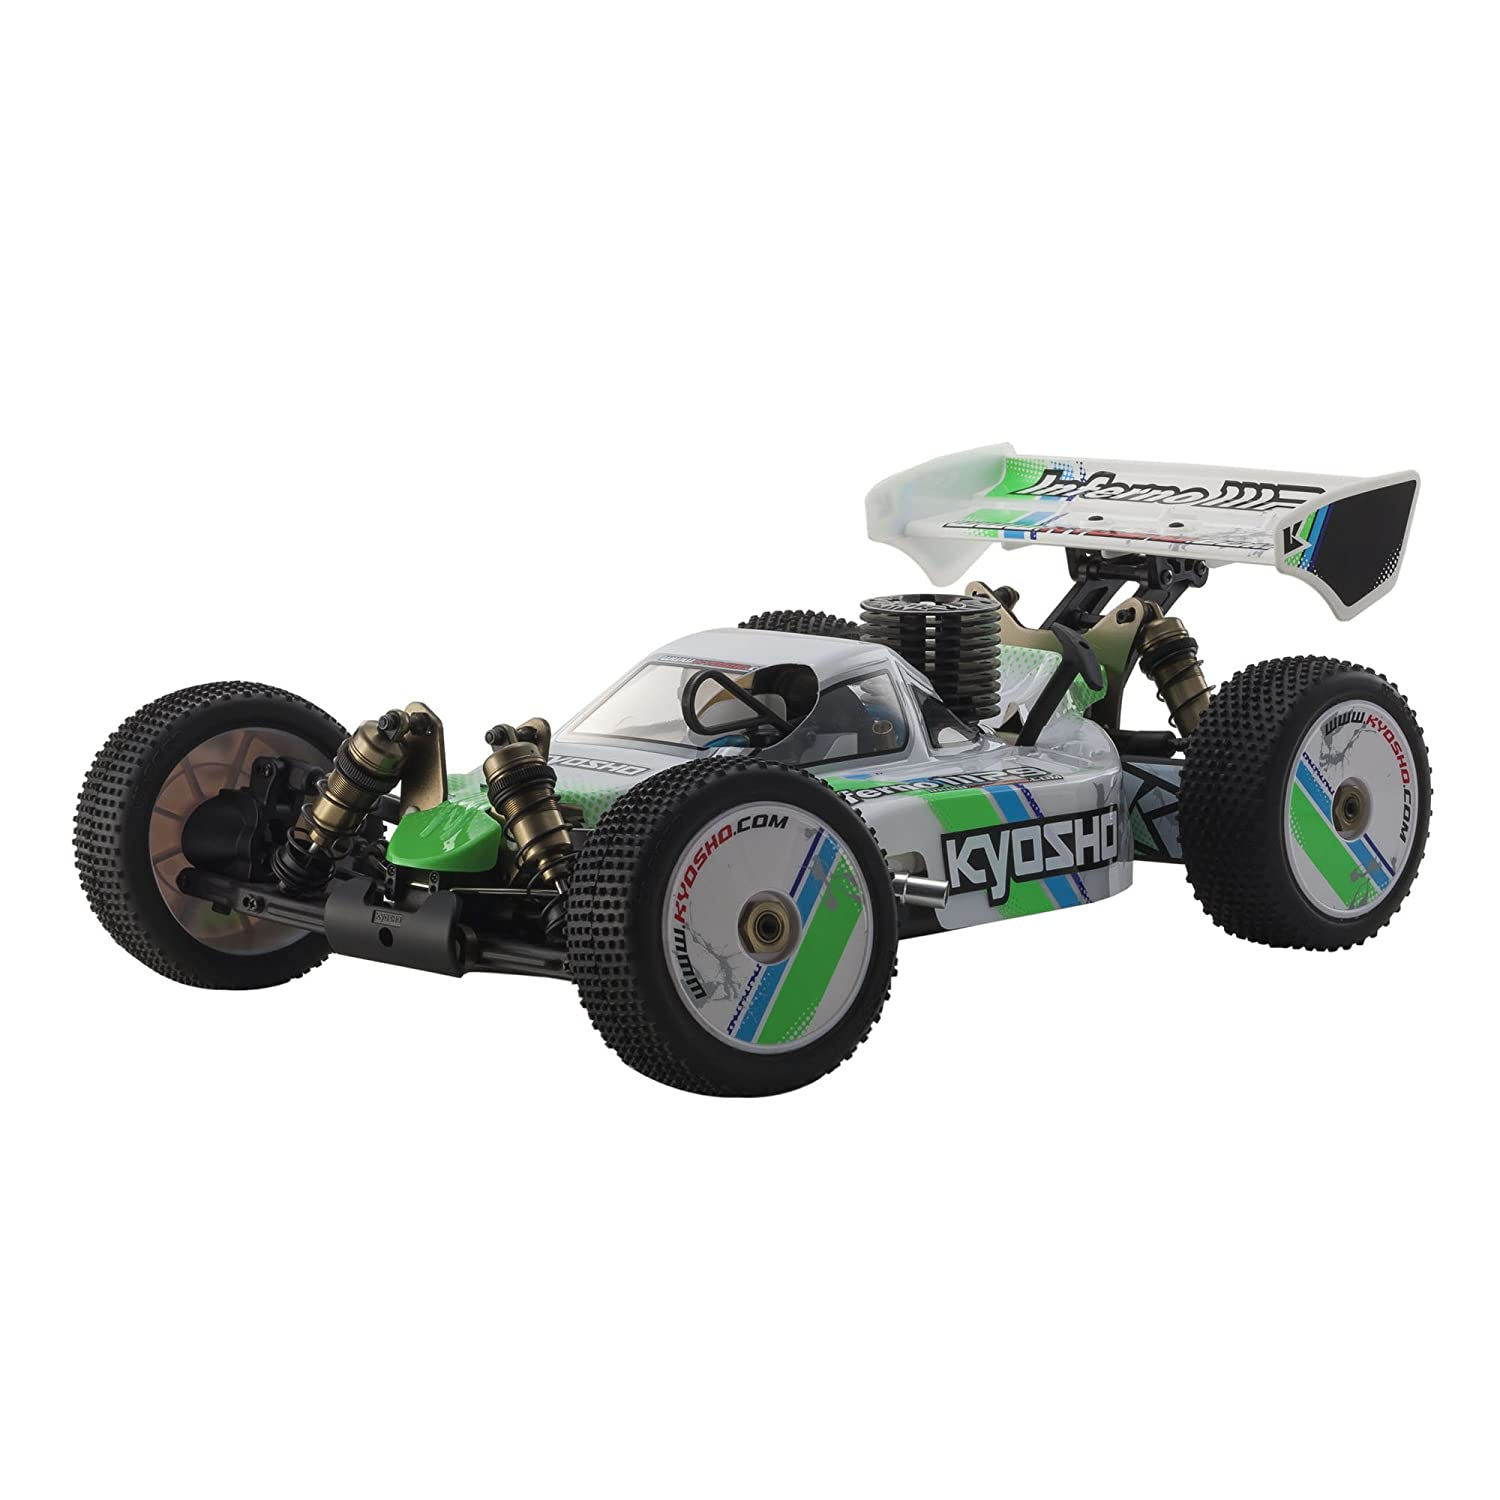 Kyosho Inferno MP9 TKI Ready Set RTR Nitro-Powered Racing Buggy